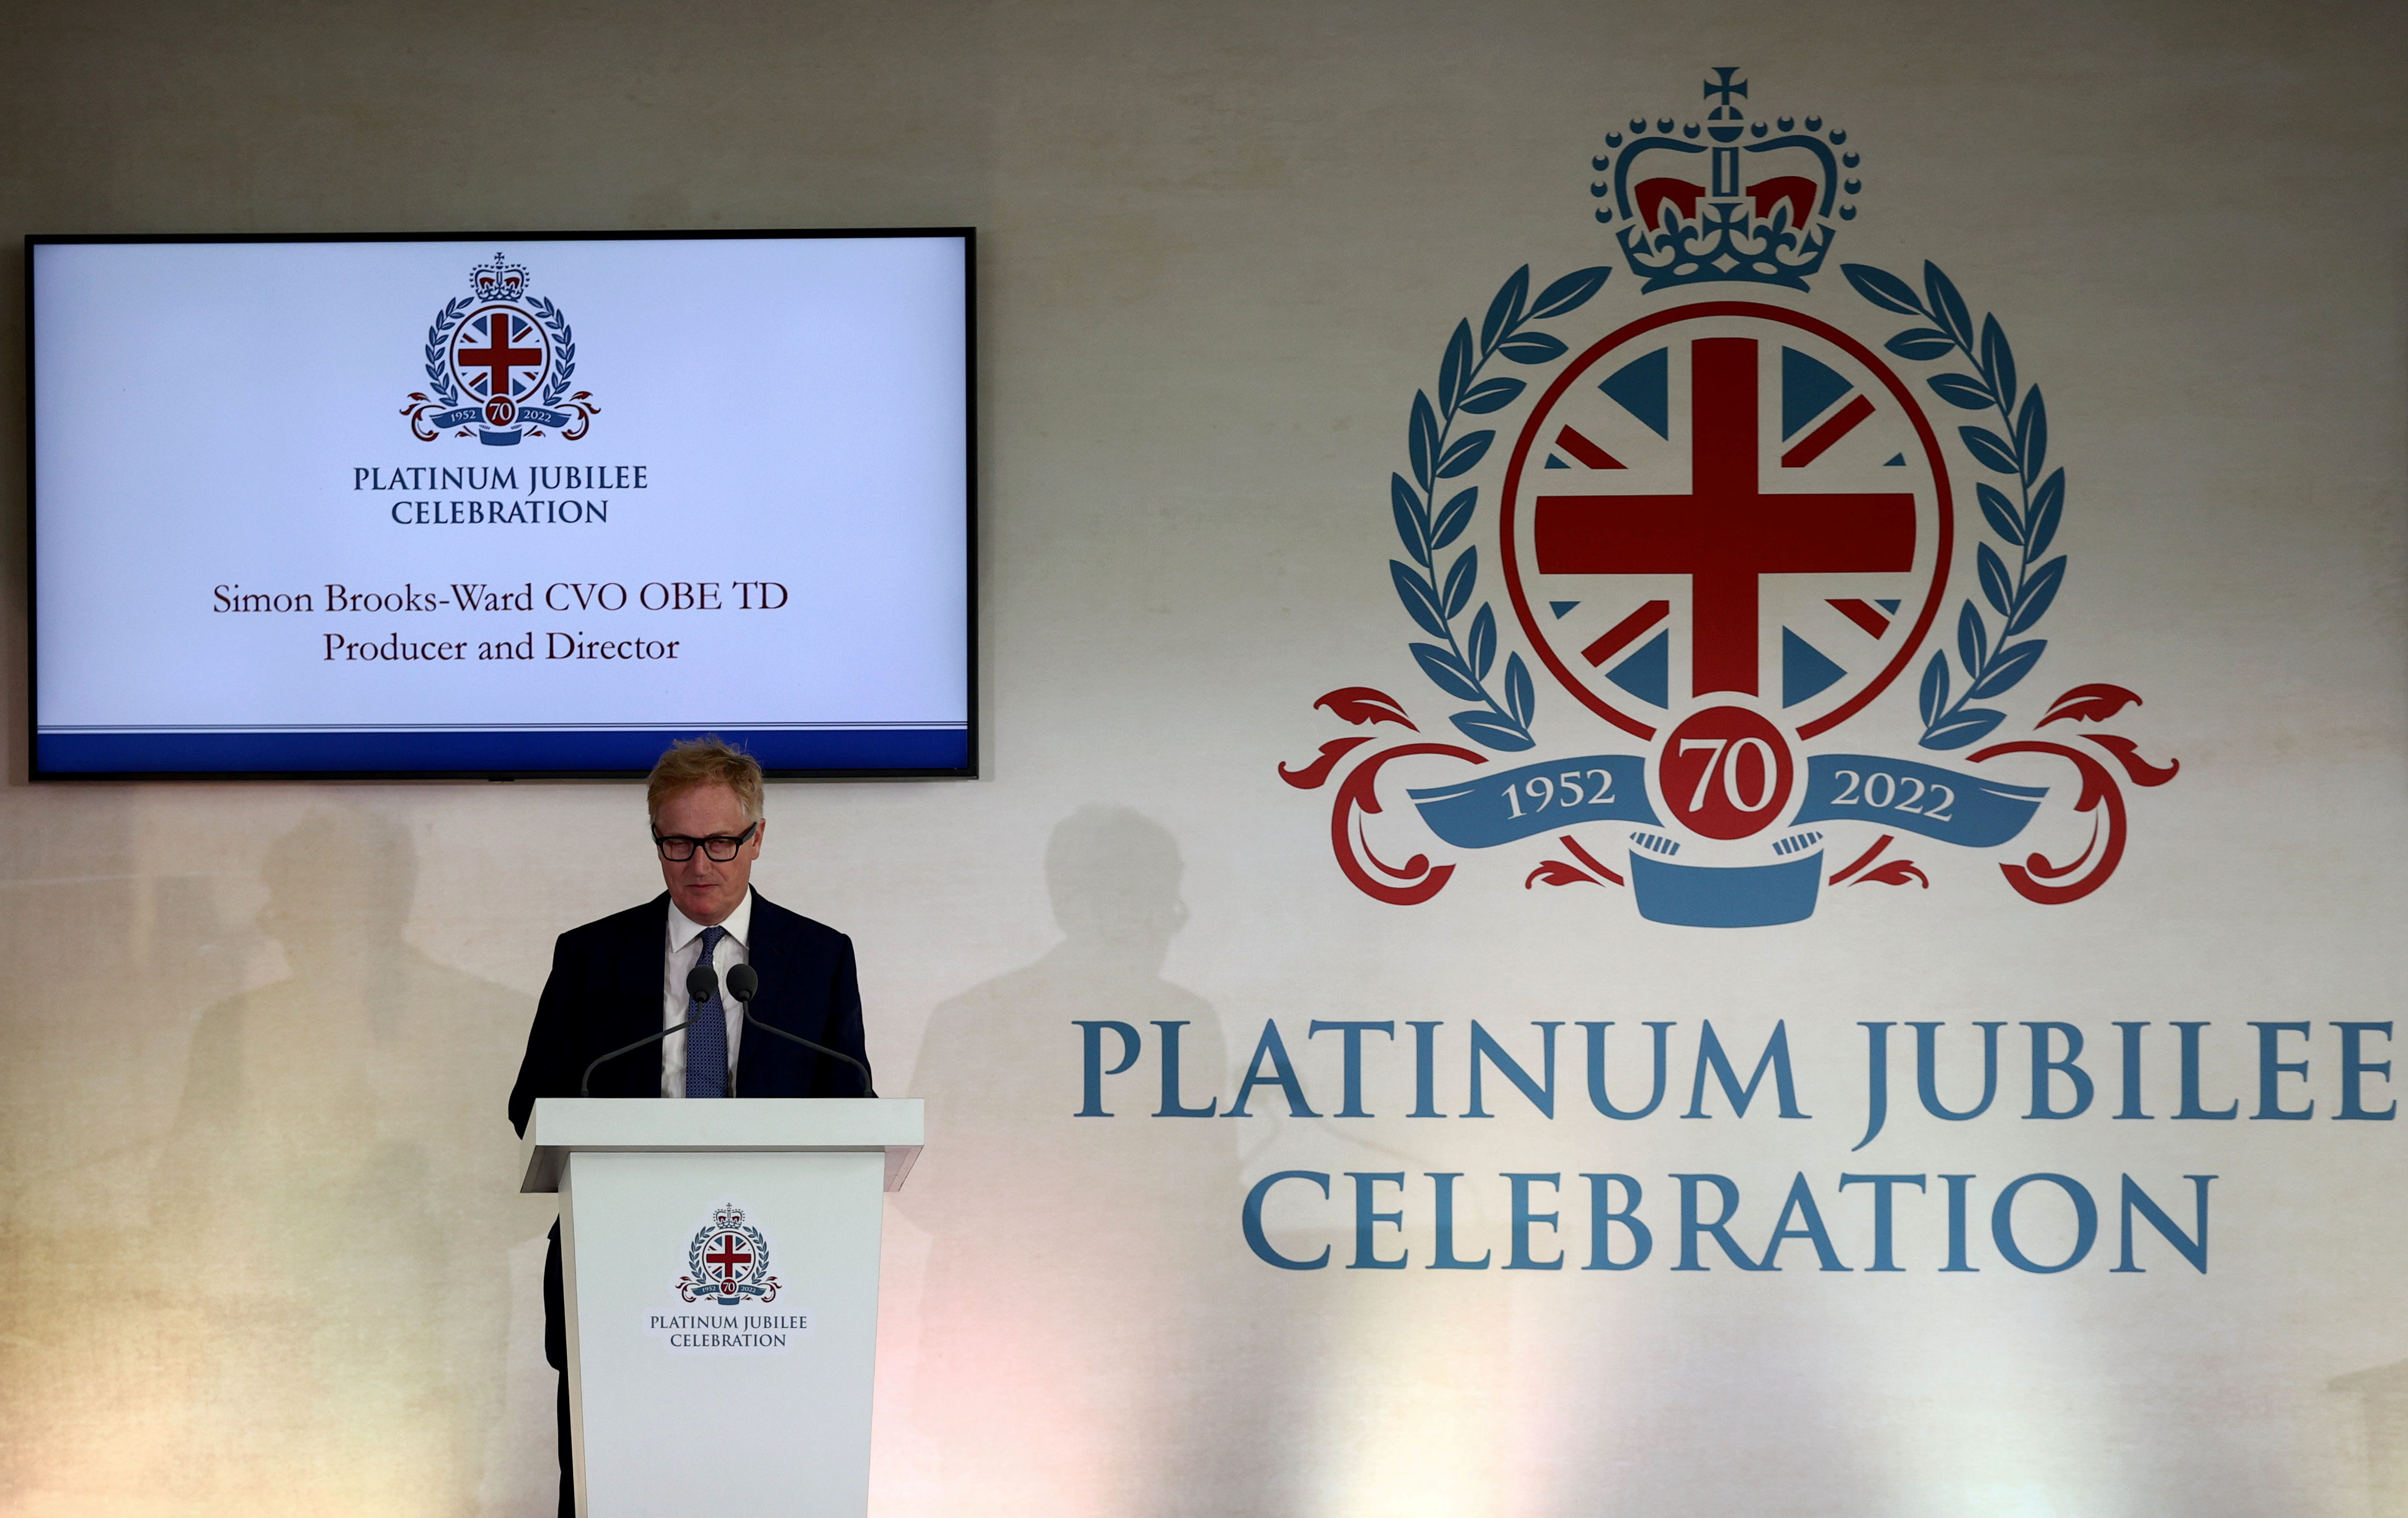 Simon Brooks-Ward, CVO OBE TD Producer and Director, speaks during the media preview of the 'Platinum Jubilee Celebration: A Gallop Through History' at Buckingham Palace in London, Britain, September 21, 2021. REUTERS/Hannah McKay